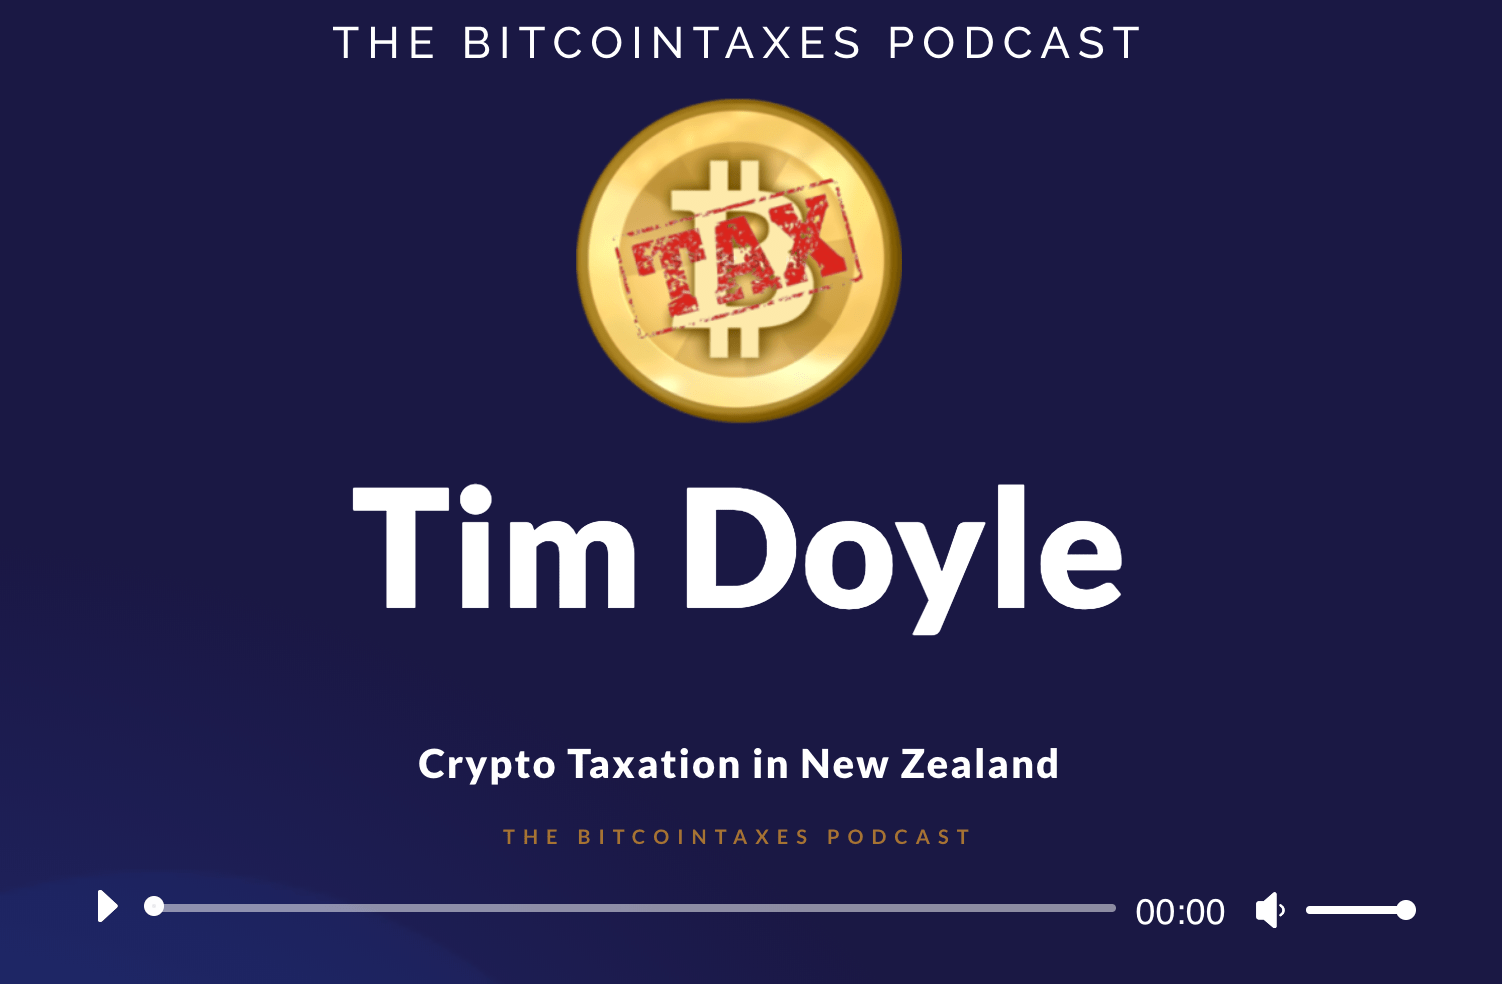 Crypto taxation in new zealand podcast Tim Doyle